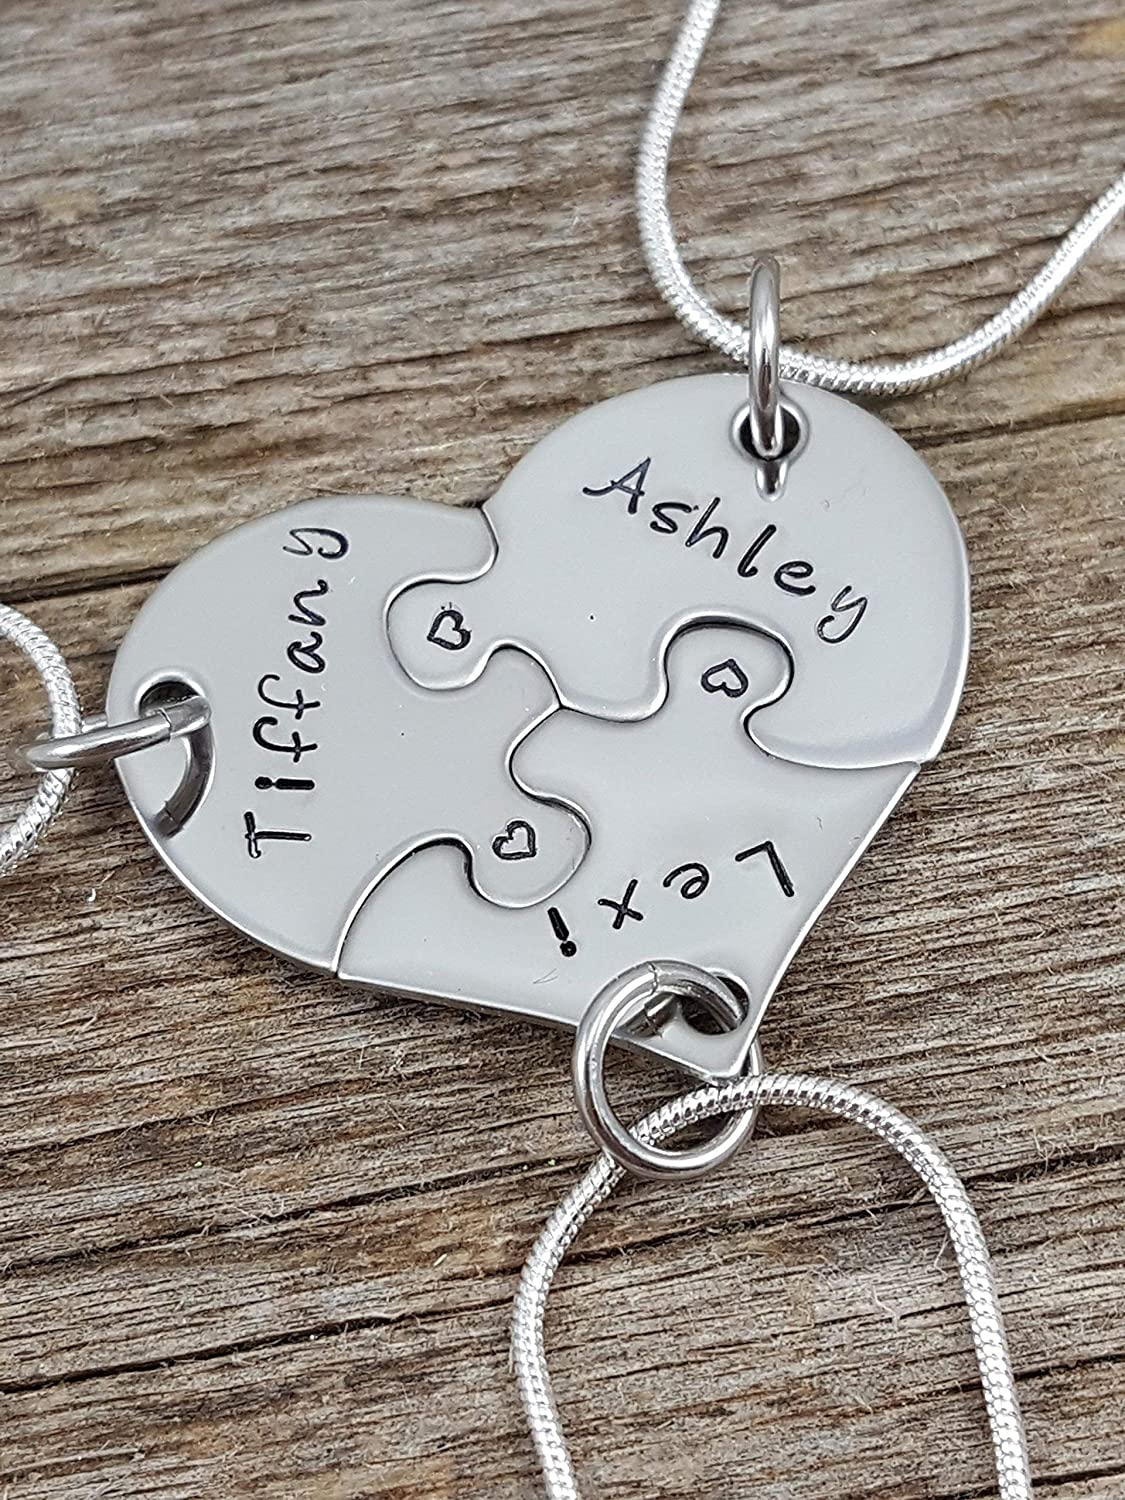 3 x 925-Sister Chain Sister Heart Gifts for Sibling Sibling Jewelry Sibling Necklace 3 Sister Necklace